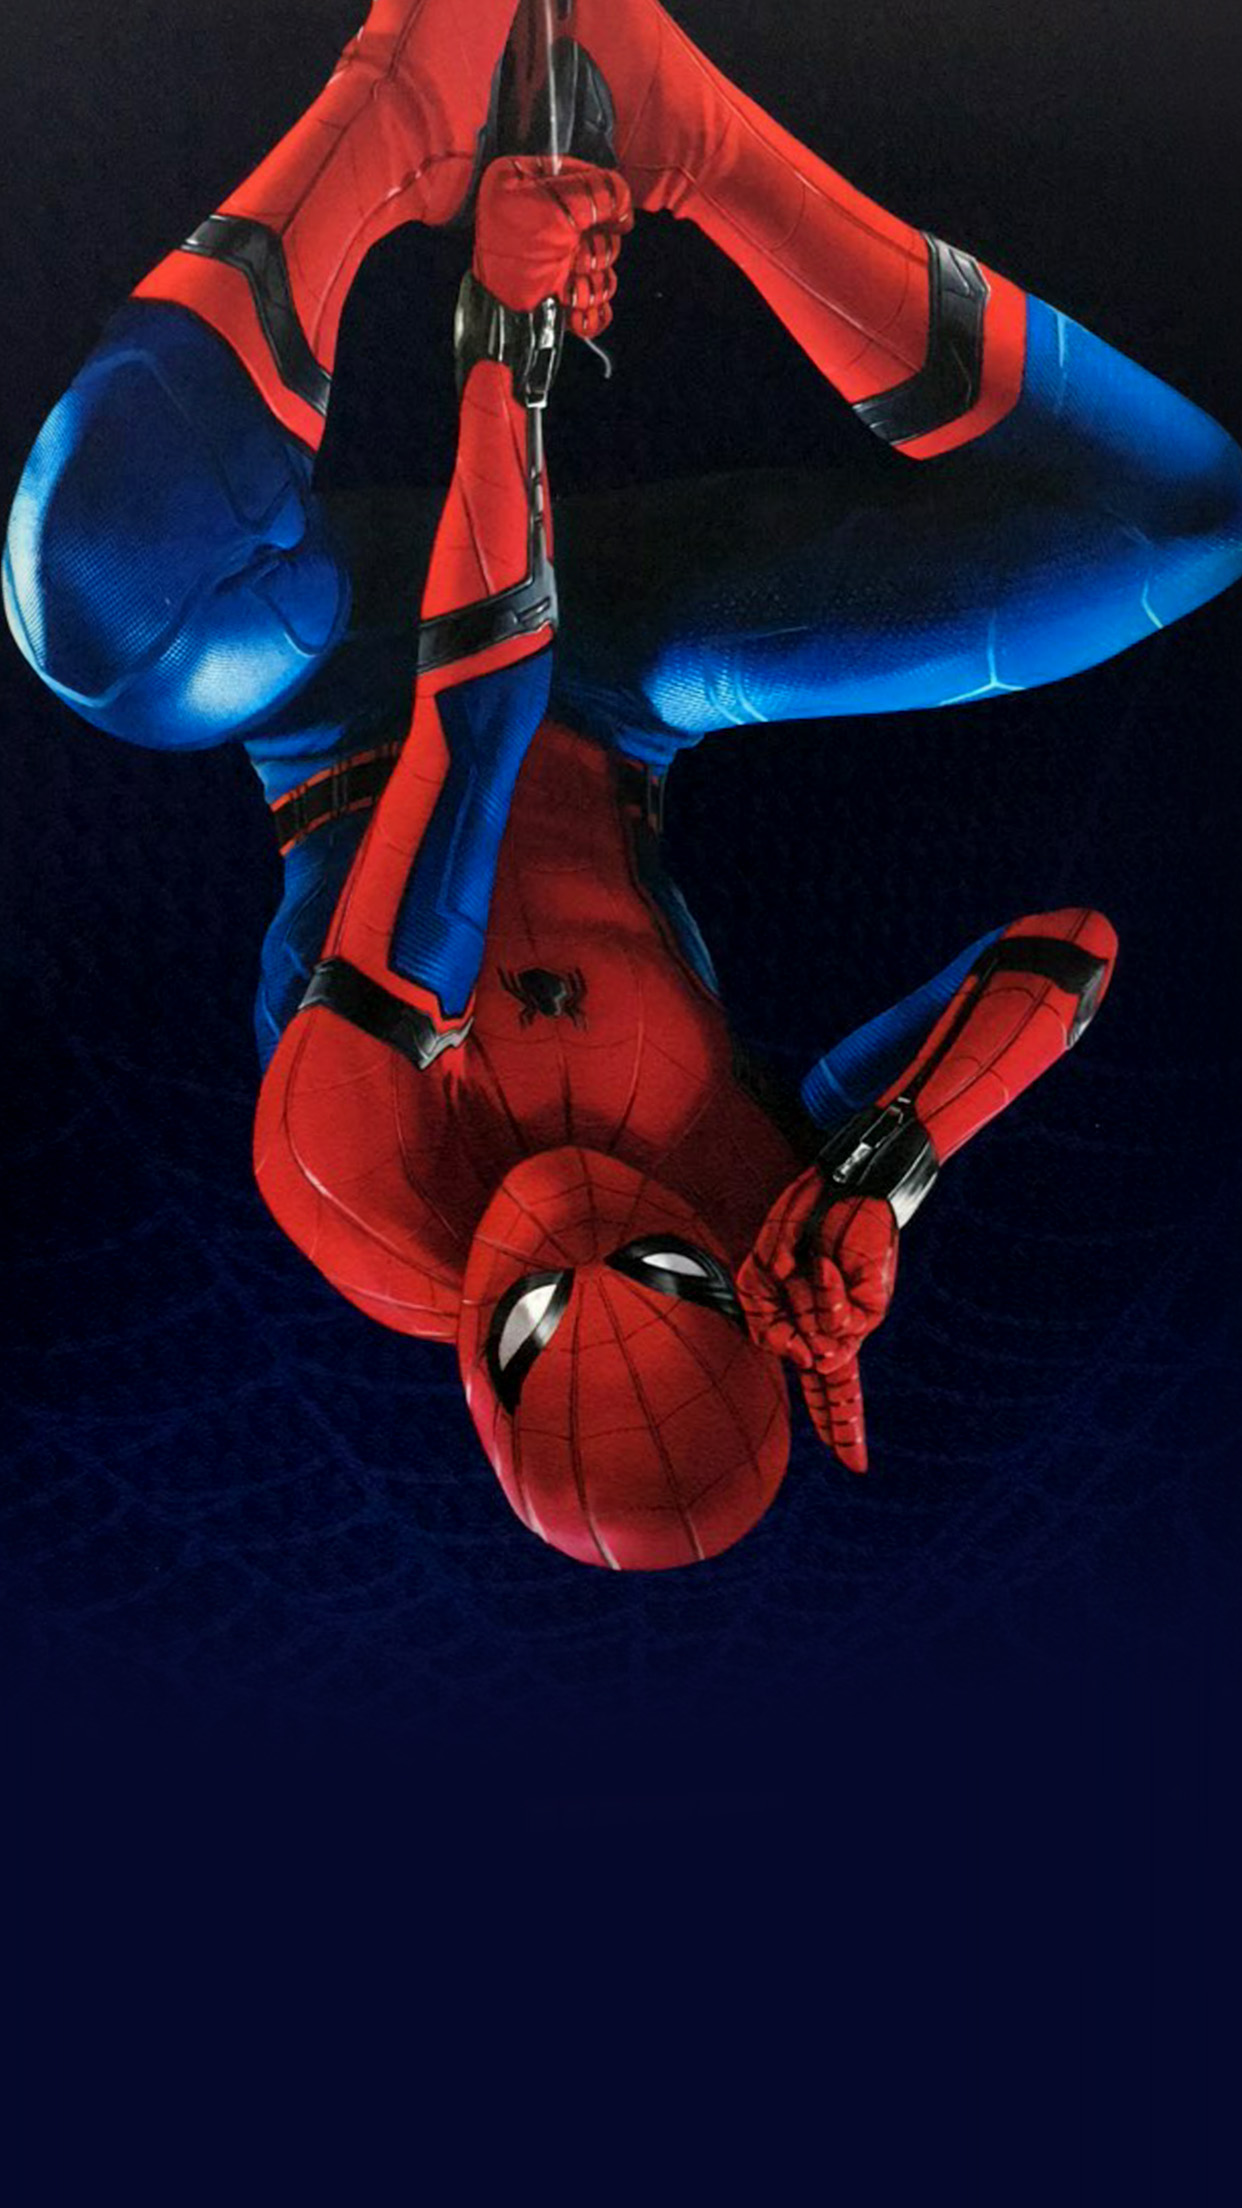 Az61 spiderman homecoming hero film illustration art wallpaper - Classic art wallpaper iphone 5 ...